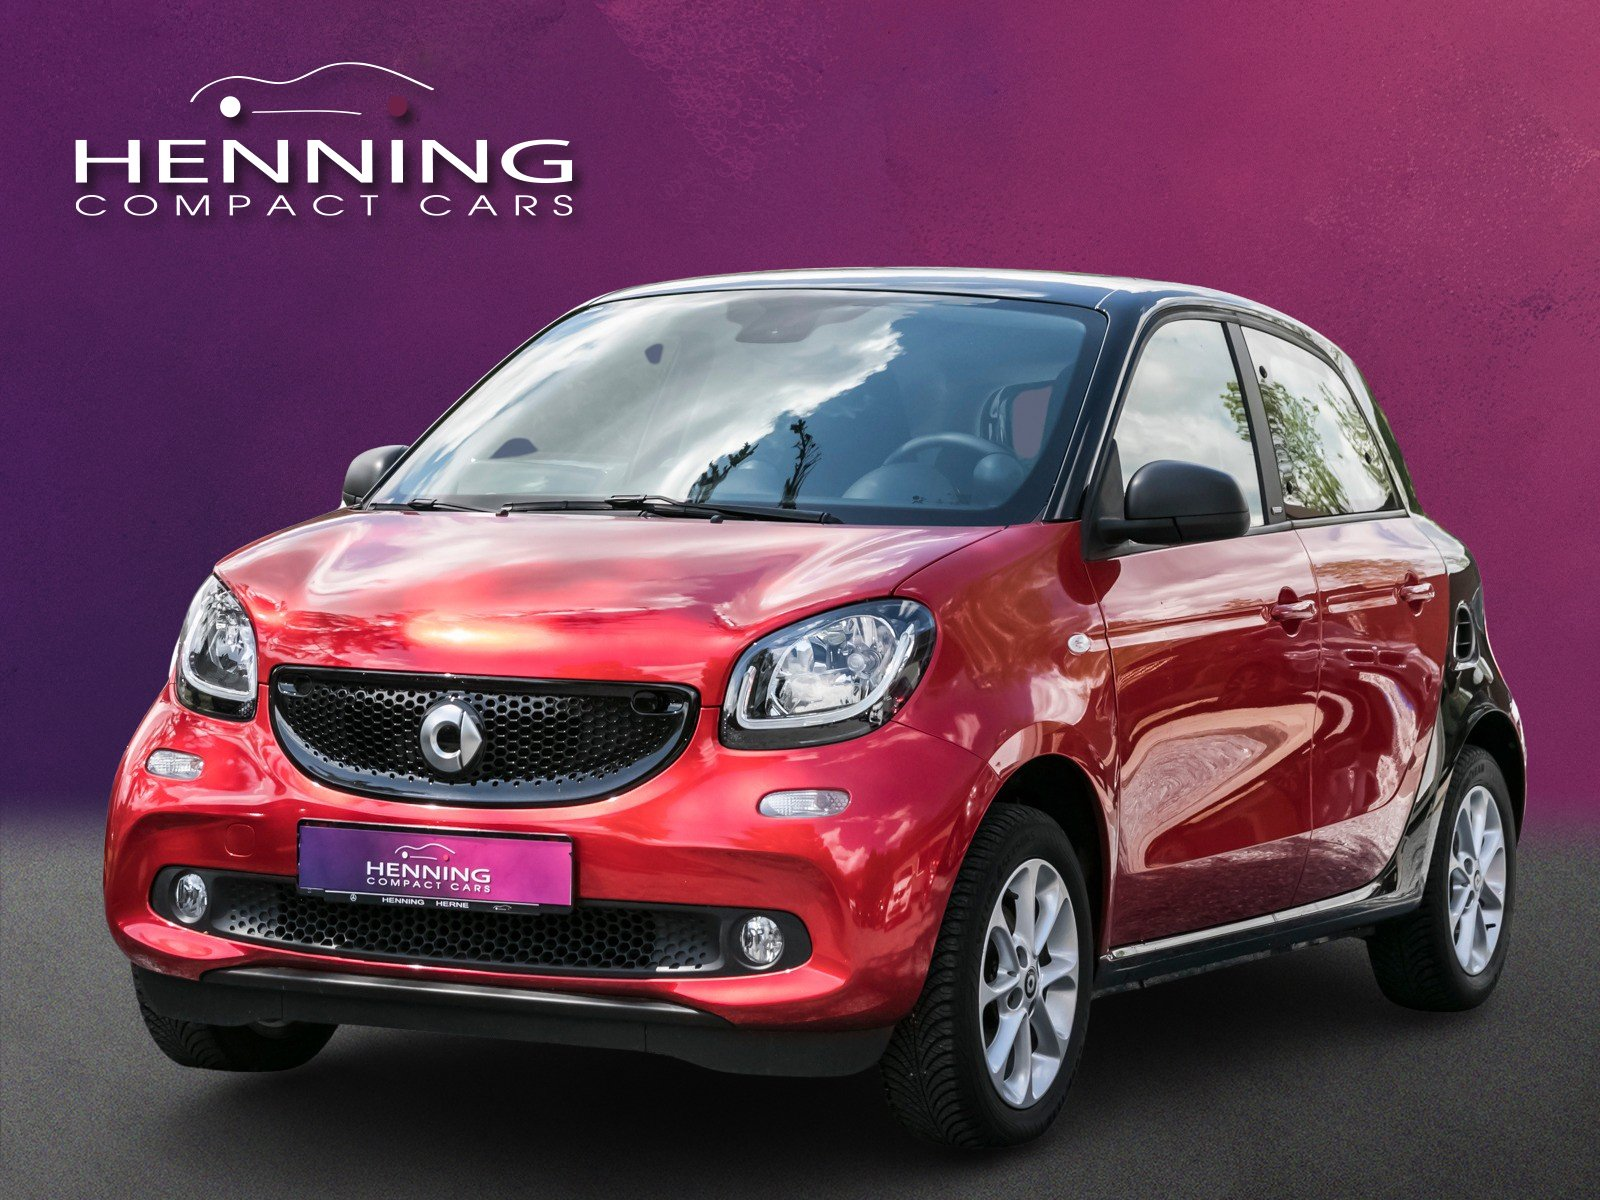 SMART smart forfour 52 KW rot